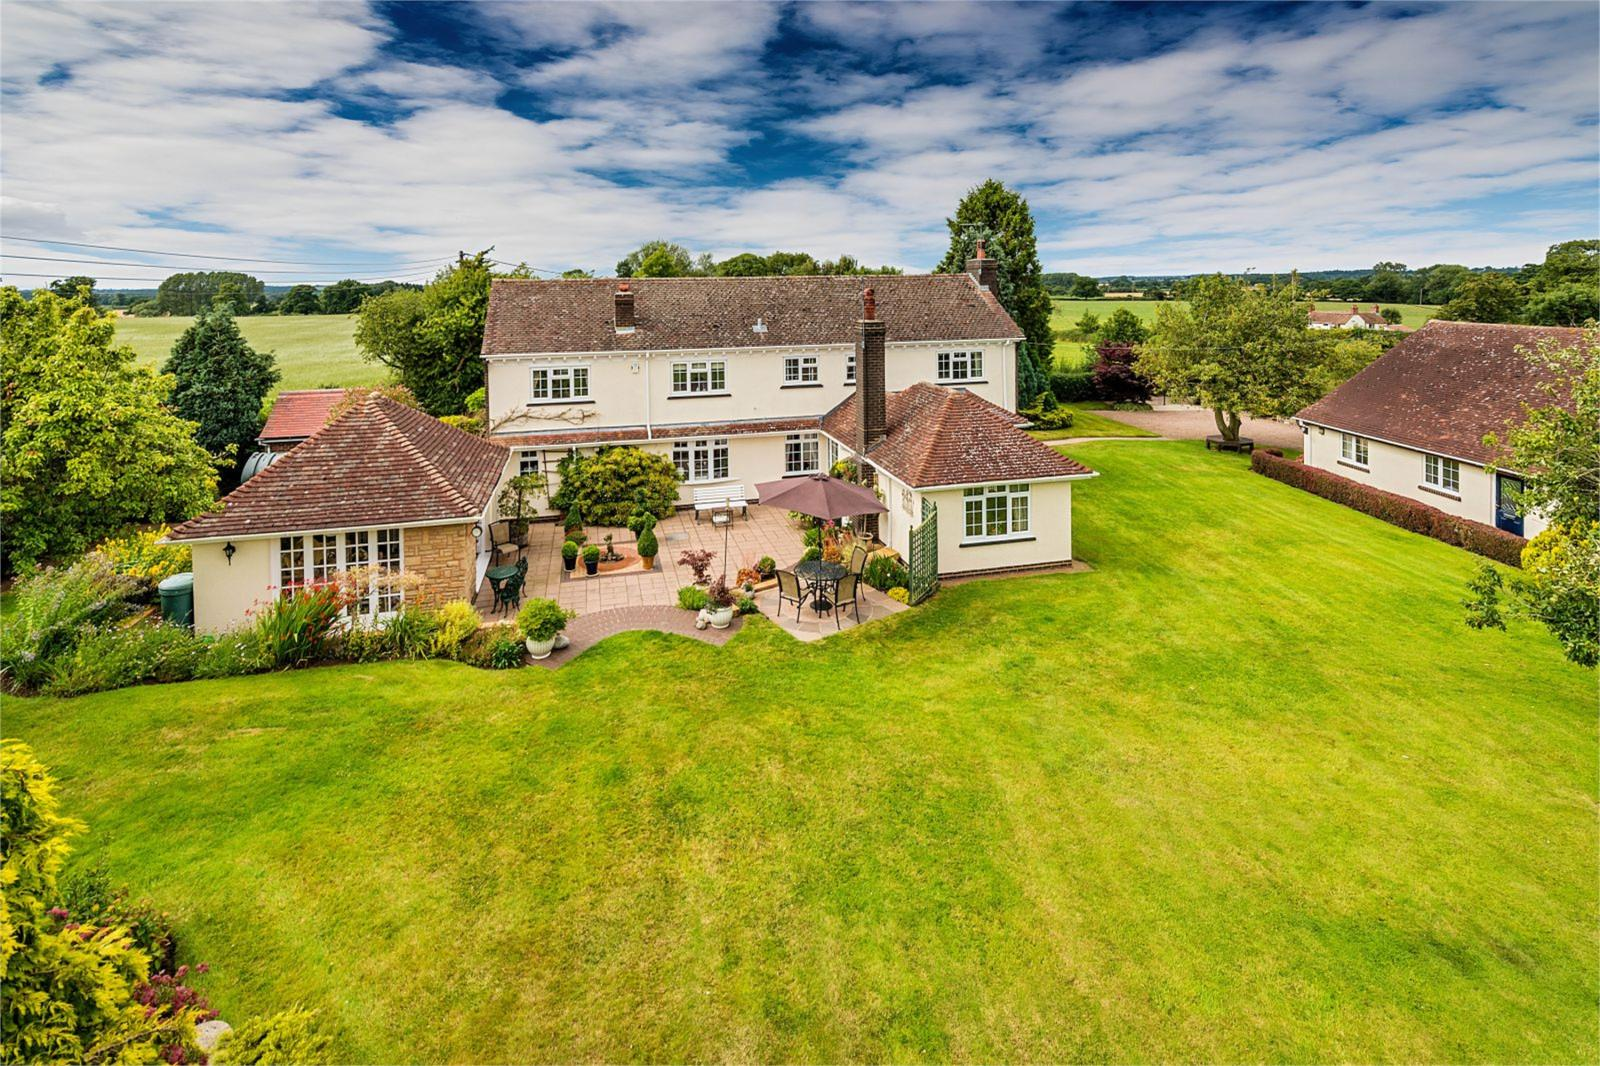 3 Bedrooms Detached House for sale in Duo Cottage, Blymhill Lawn, Blymhill, Weston-Under-Lizard, TF11